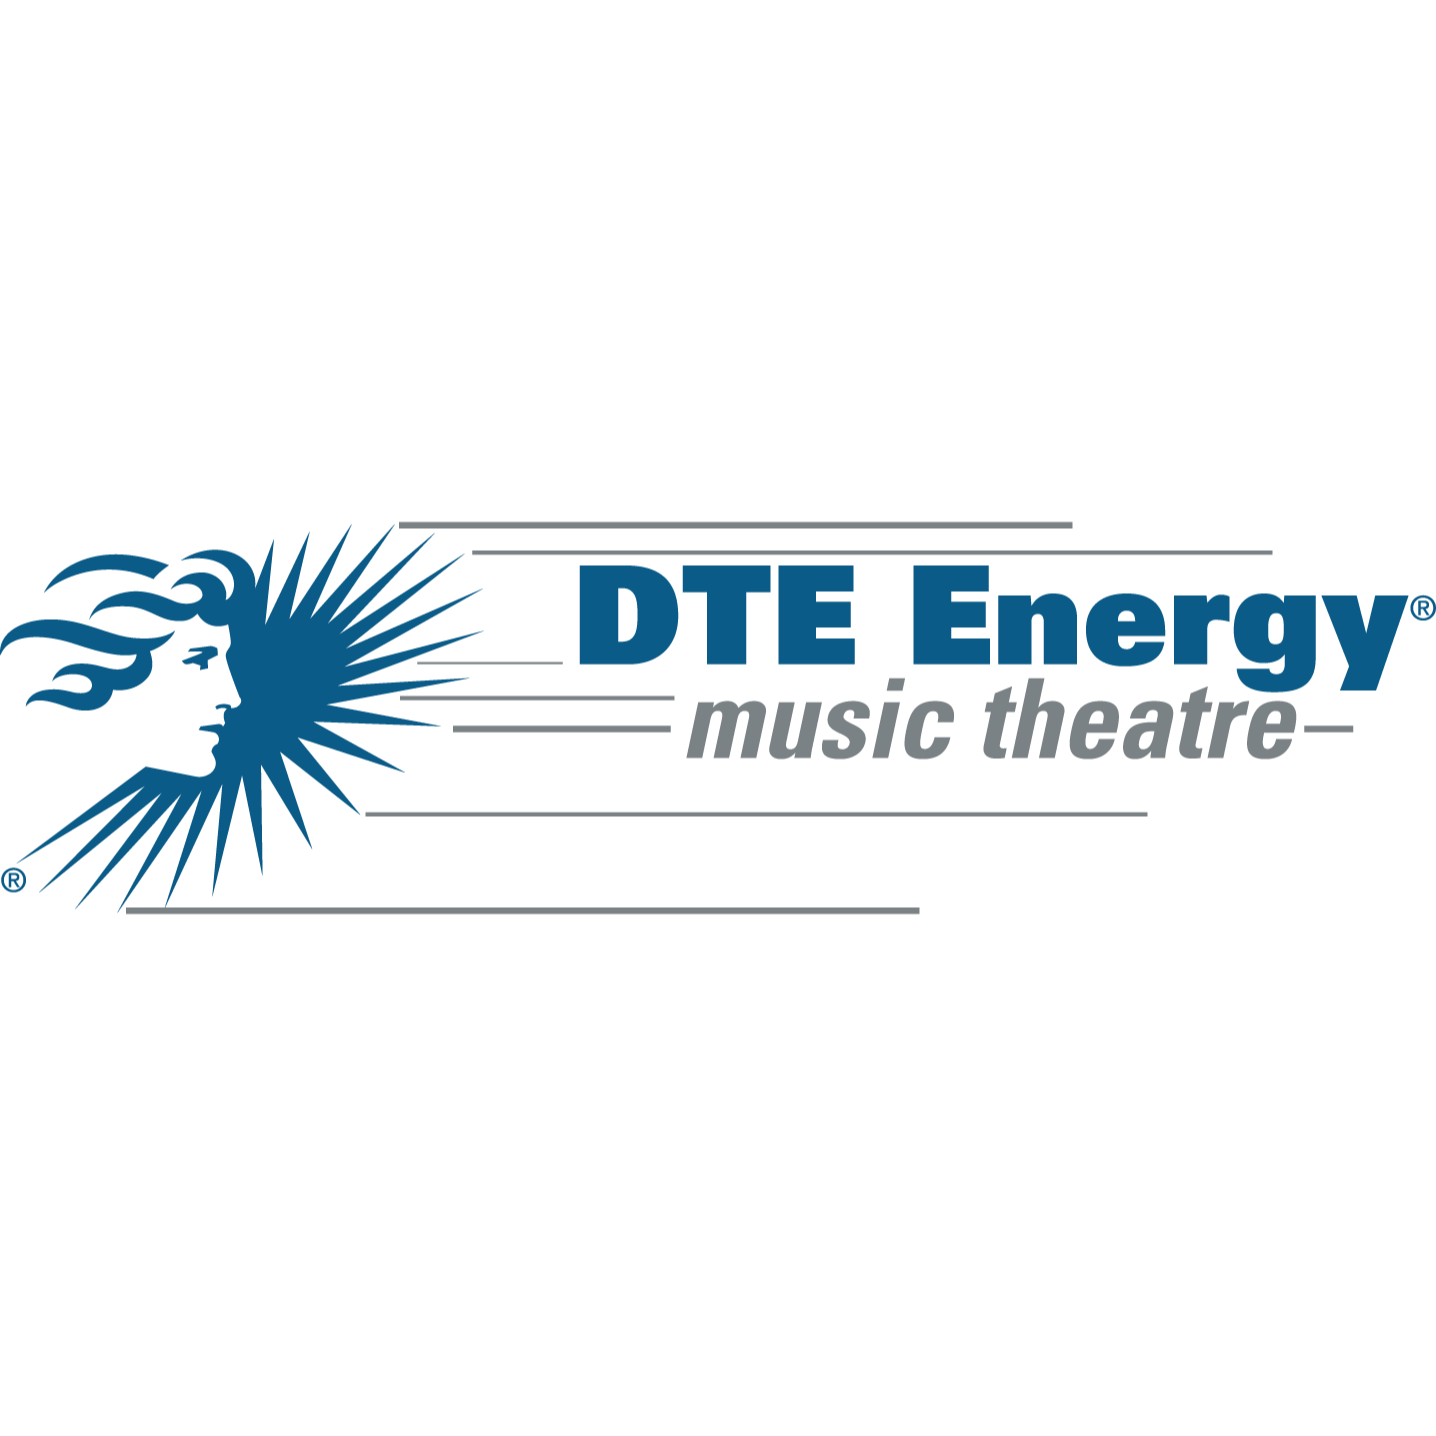 DTE Energy Music Theatre 33 Bob Seger Drive Clarkston, MI ... on duke power map, puget sound energy map, centerpoint energy map, alliant energy map, duke energy map, northwestern energy map, alabama power map, nv energy map, spectra energy map, consumers energy map, eqt midstream map, consolidated edison map, westar energy map, entergy map, devon energy map, atmos energy map, energy transfer partners map, dominion resources map, nrg energy map, lowe's map,